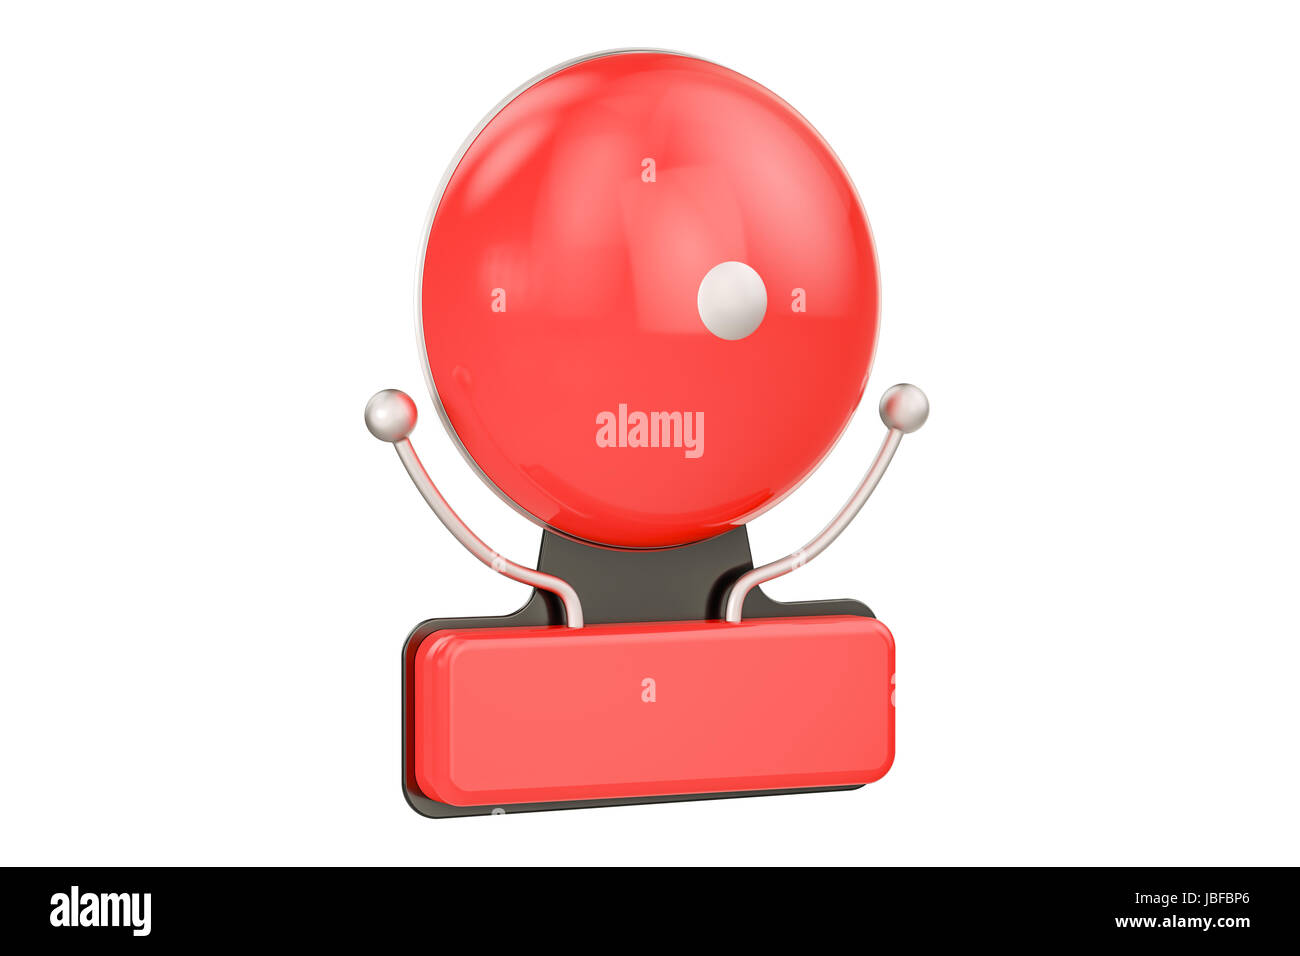 Fire Alarm closeup, 3D rendering isolated on white background - Stock Image